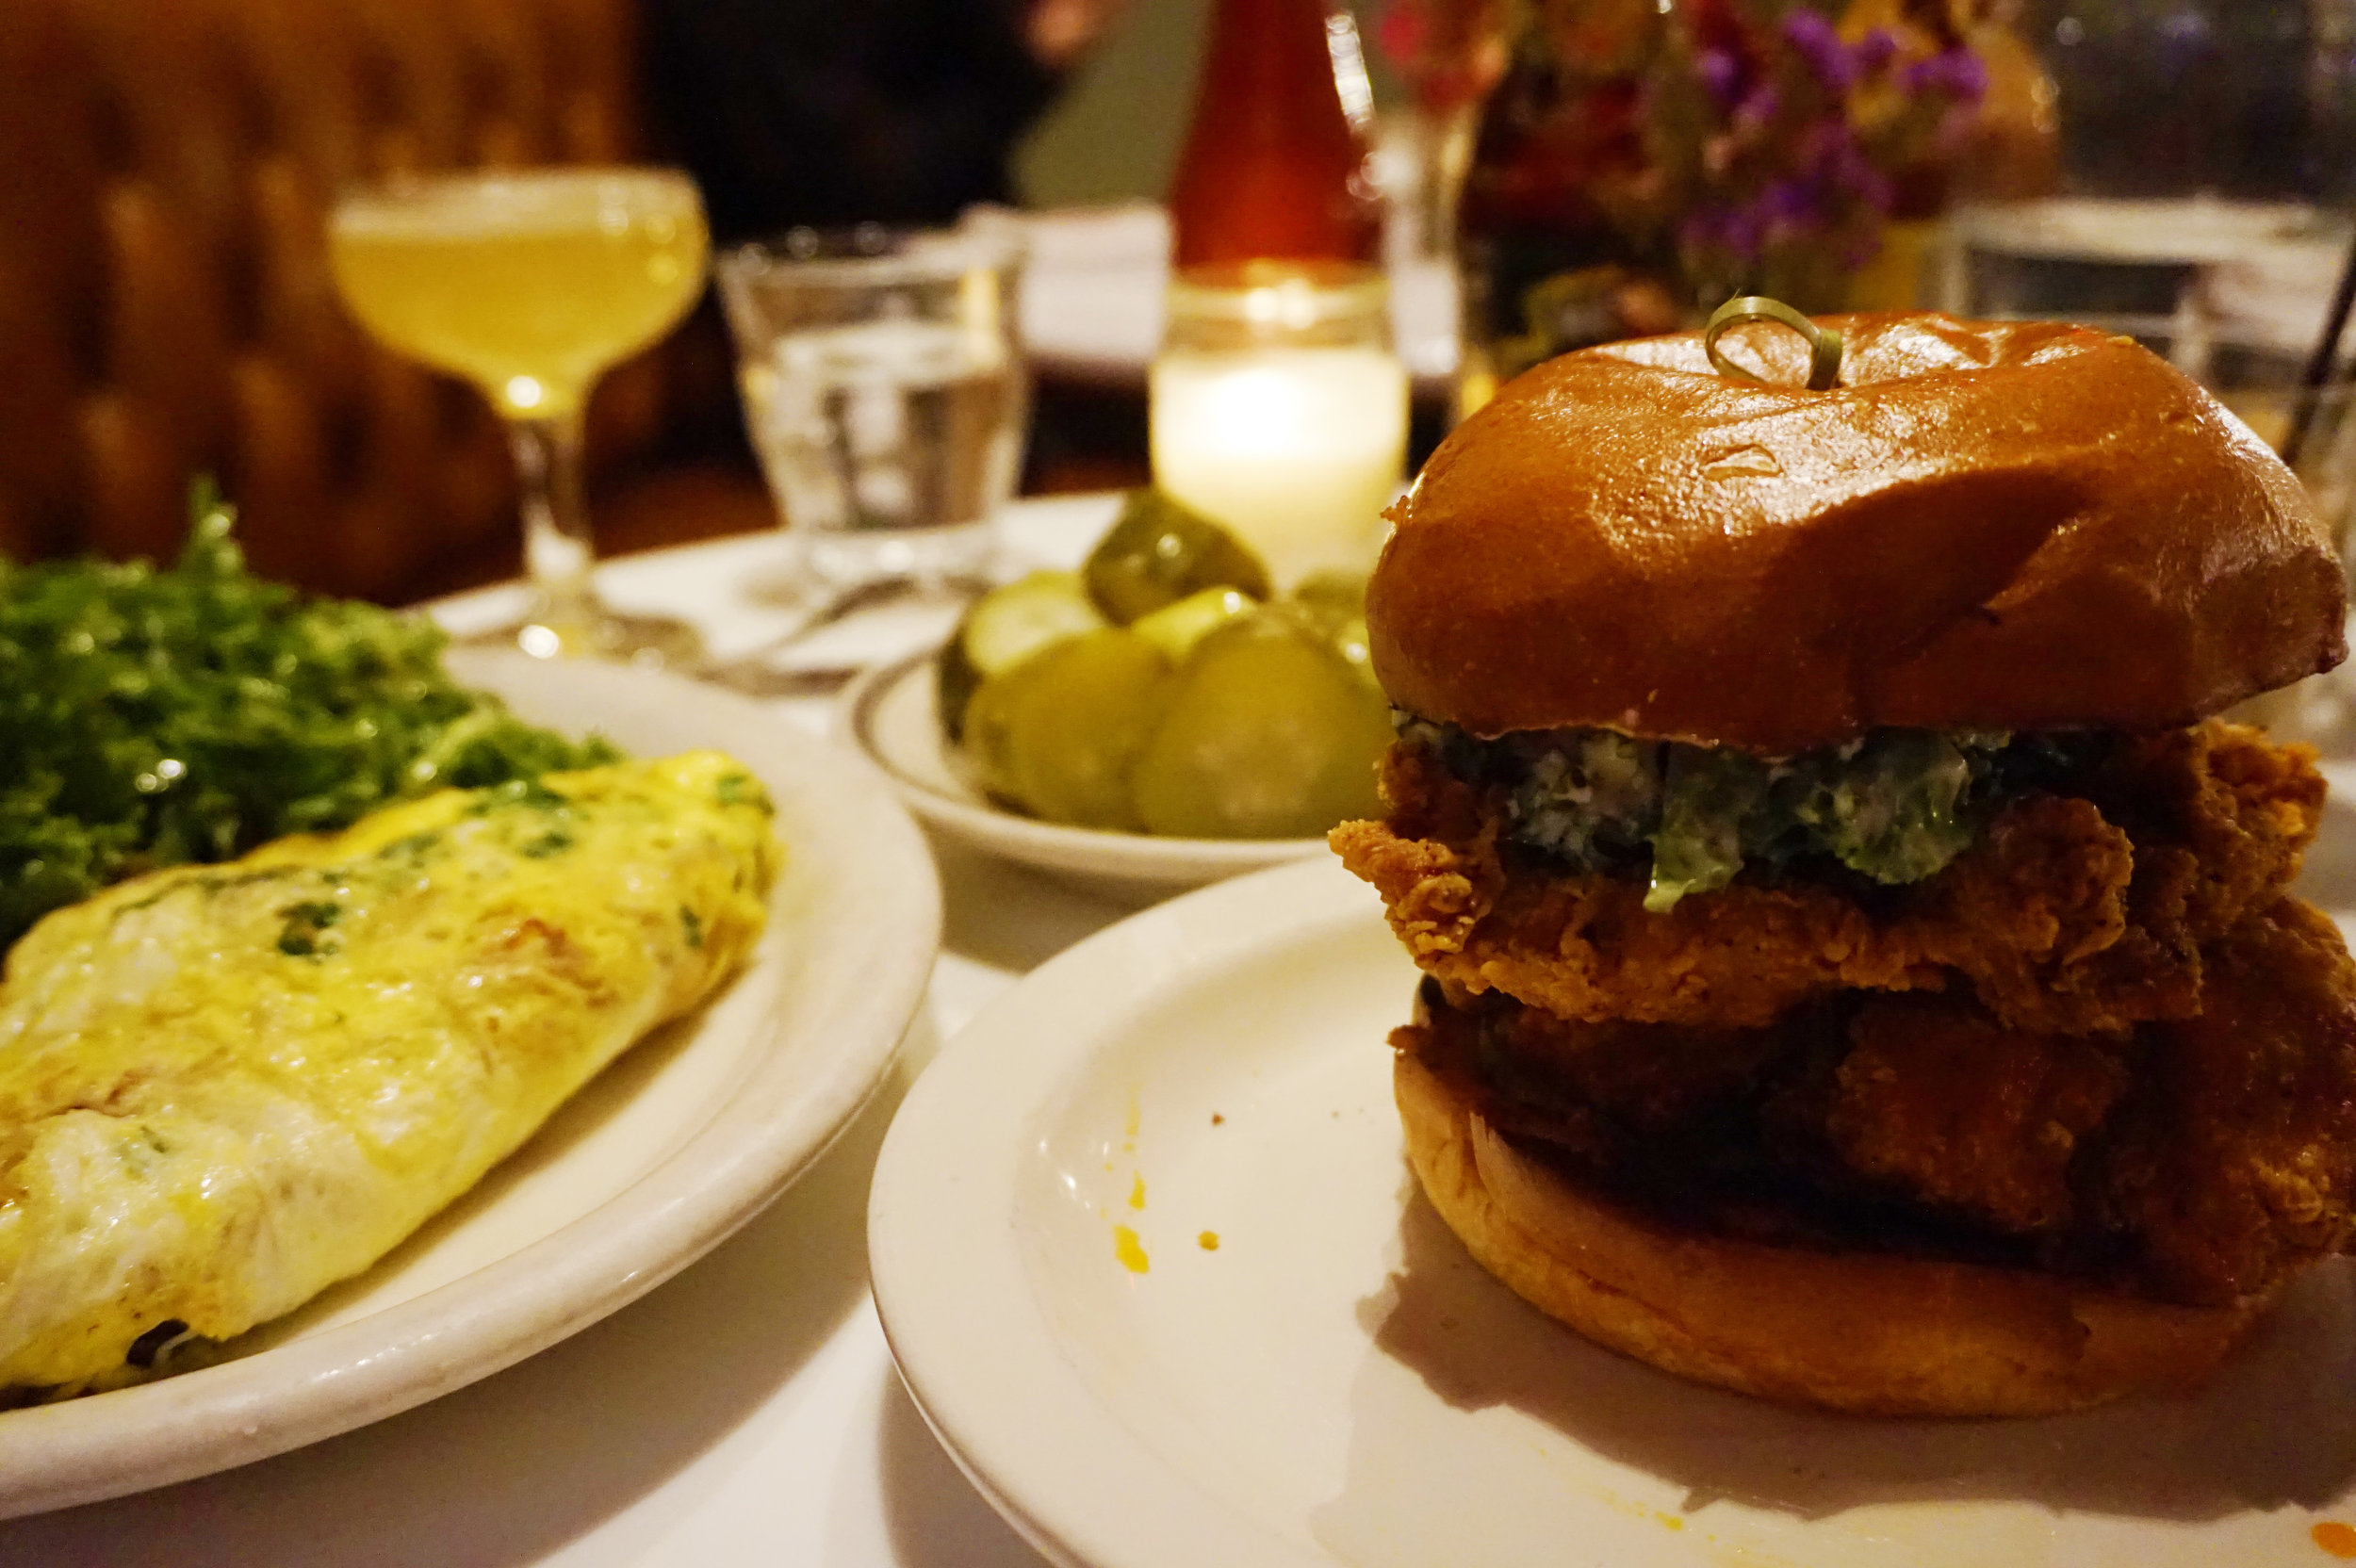 Fried chicken sandwich, goat cheese and kale omelette, and a side of pickles